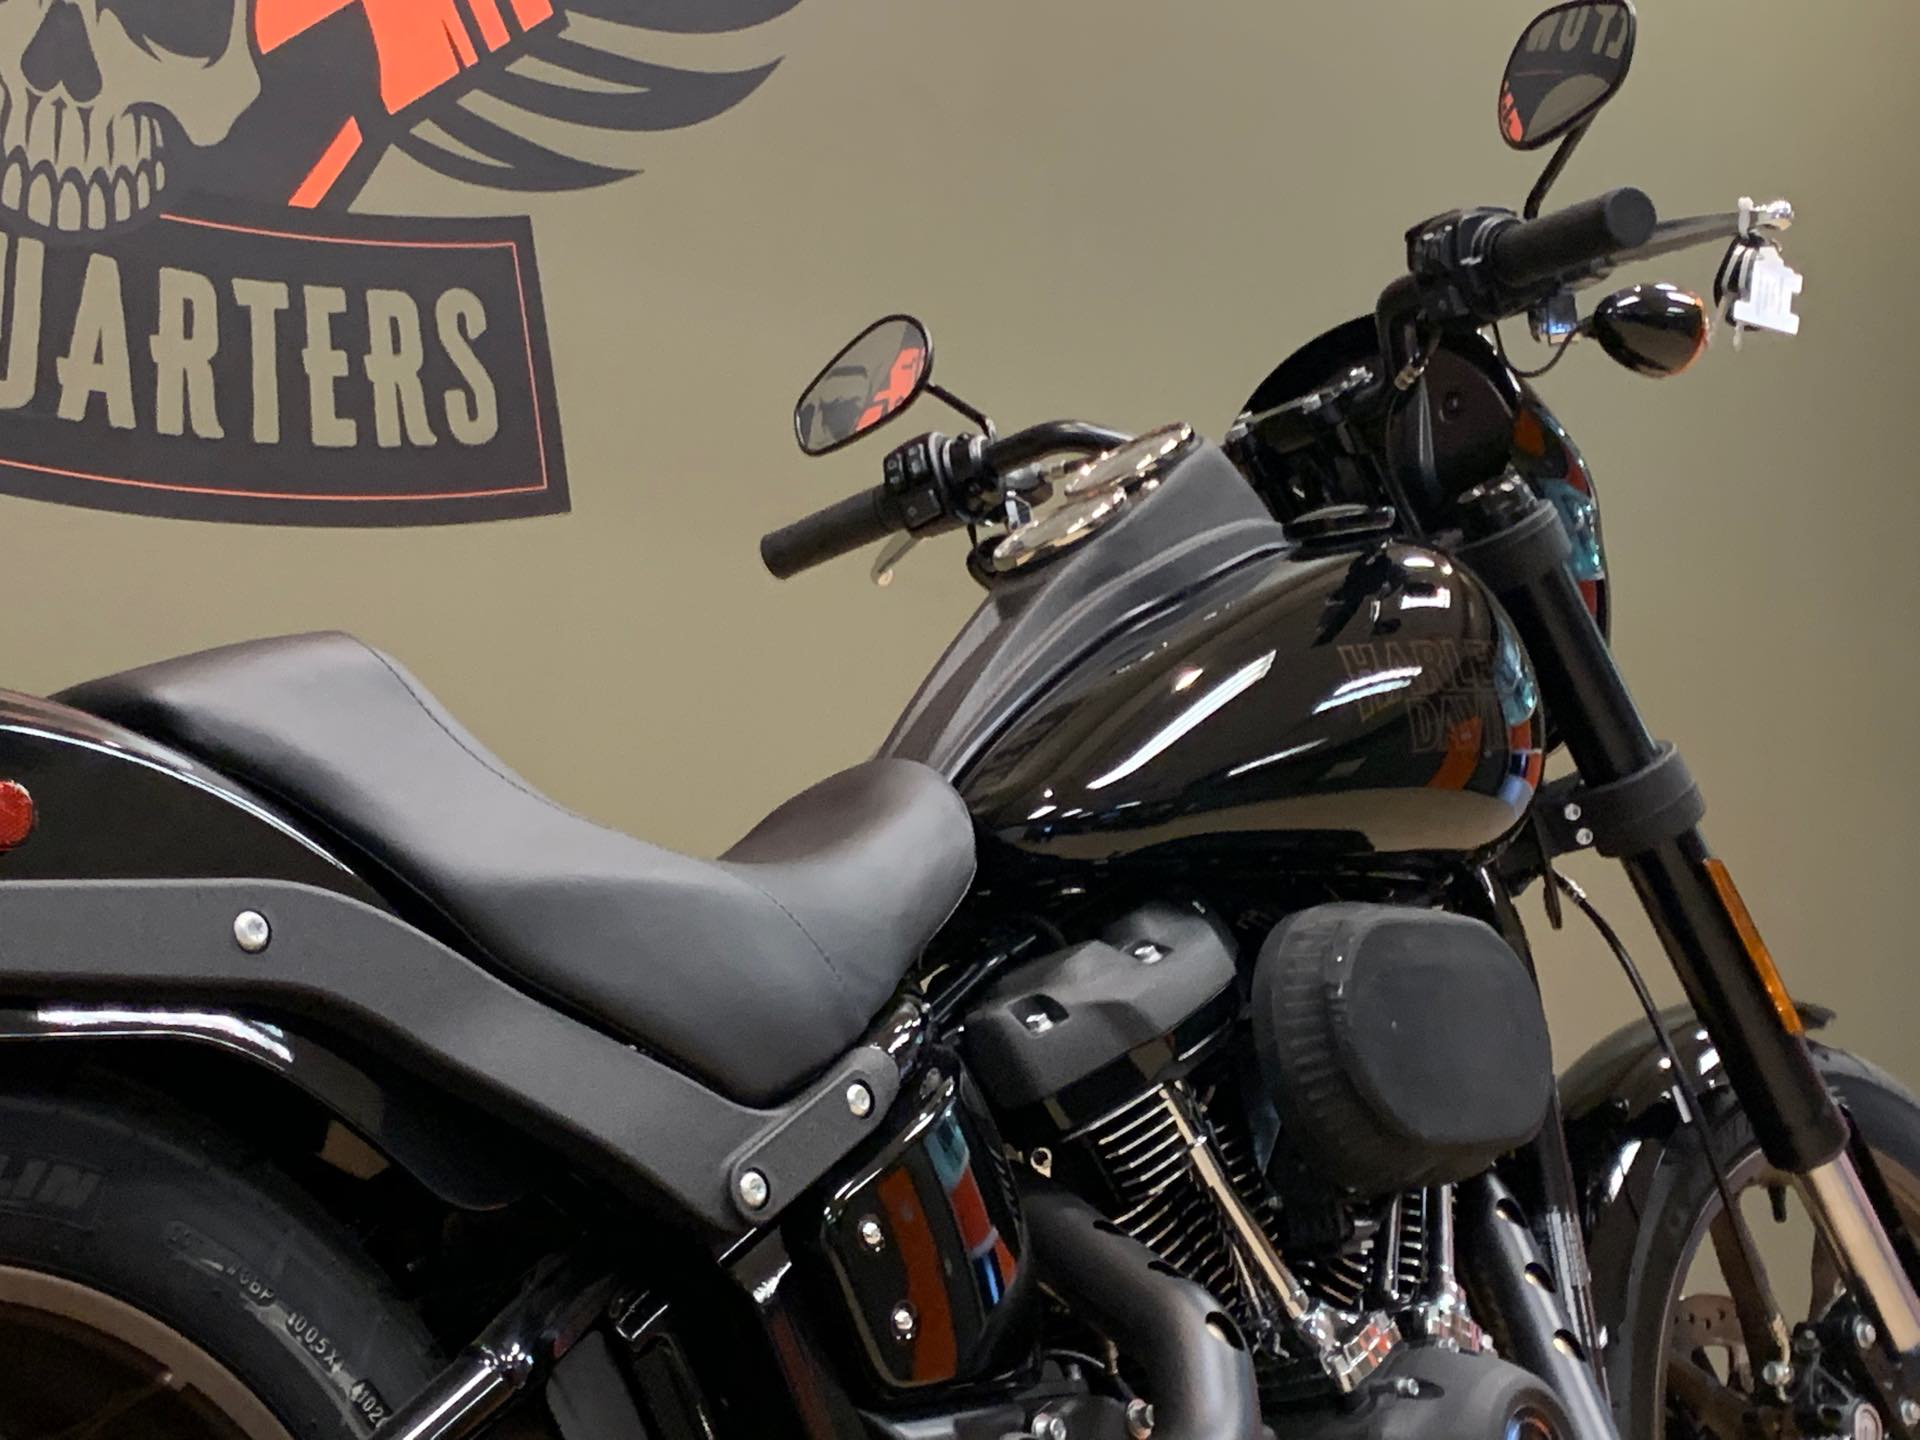 2020 Harley-Davidson Softail Low Rider S at Loess Hills Harley-Davidson